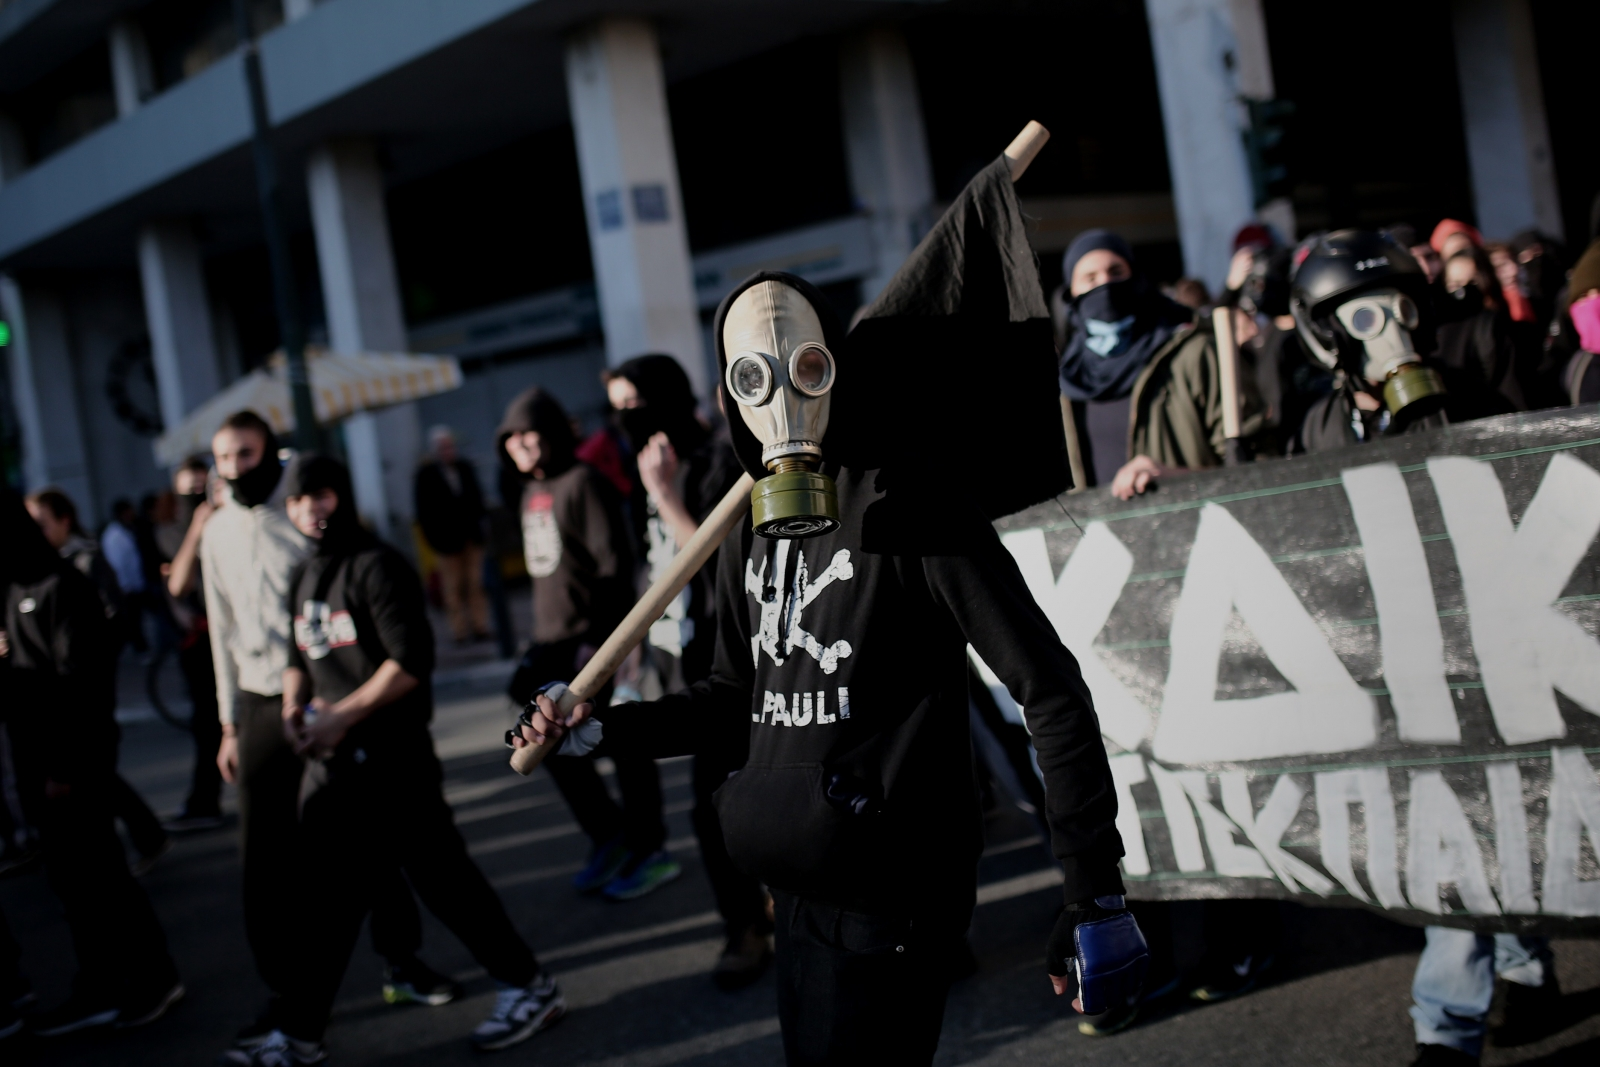 Protesters gather in Athens yesterday. (ANGELOS TZORTZINIS/AFP/Getty)